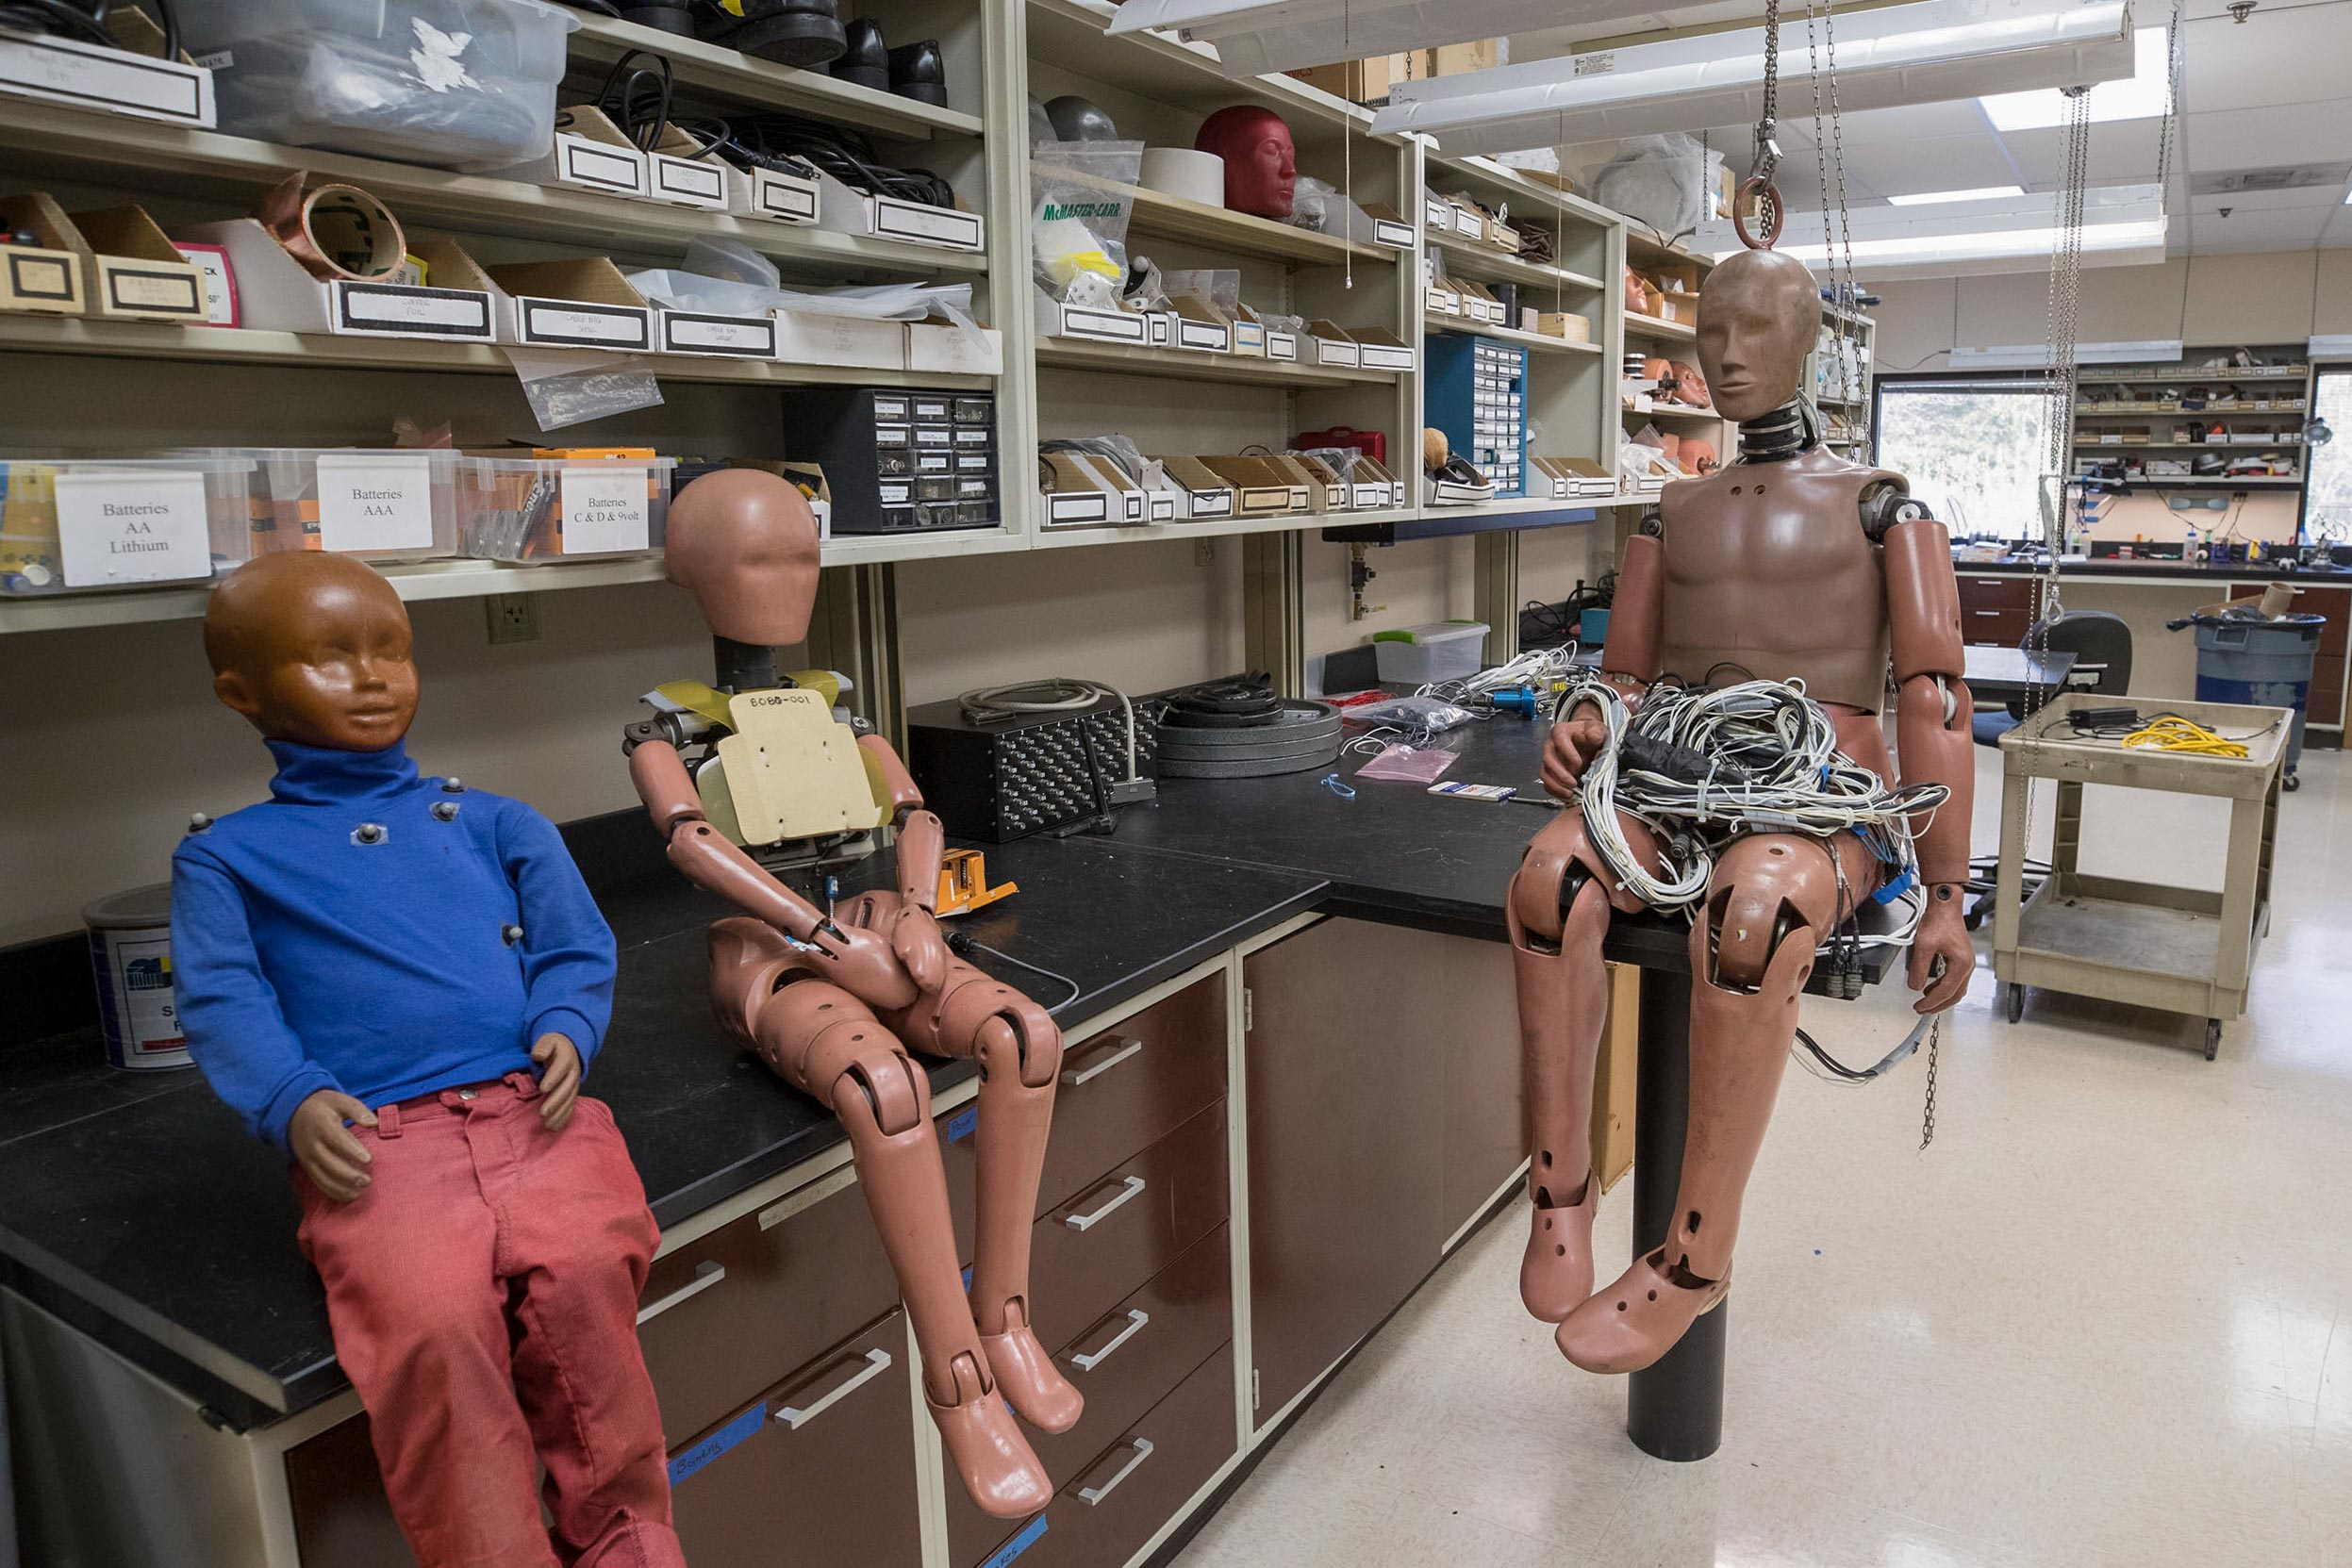 The Center for Applied Biomechanics works with a variety of crash test models to improve automobile safety.